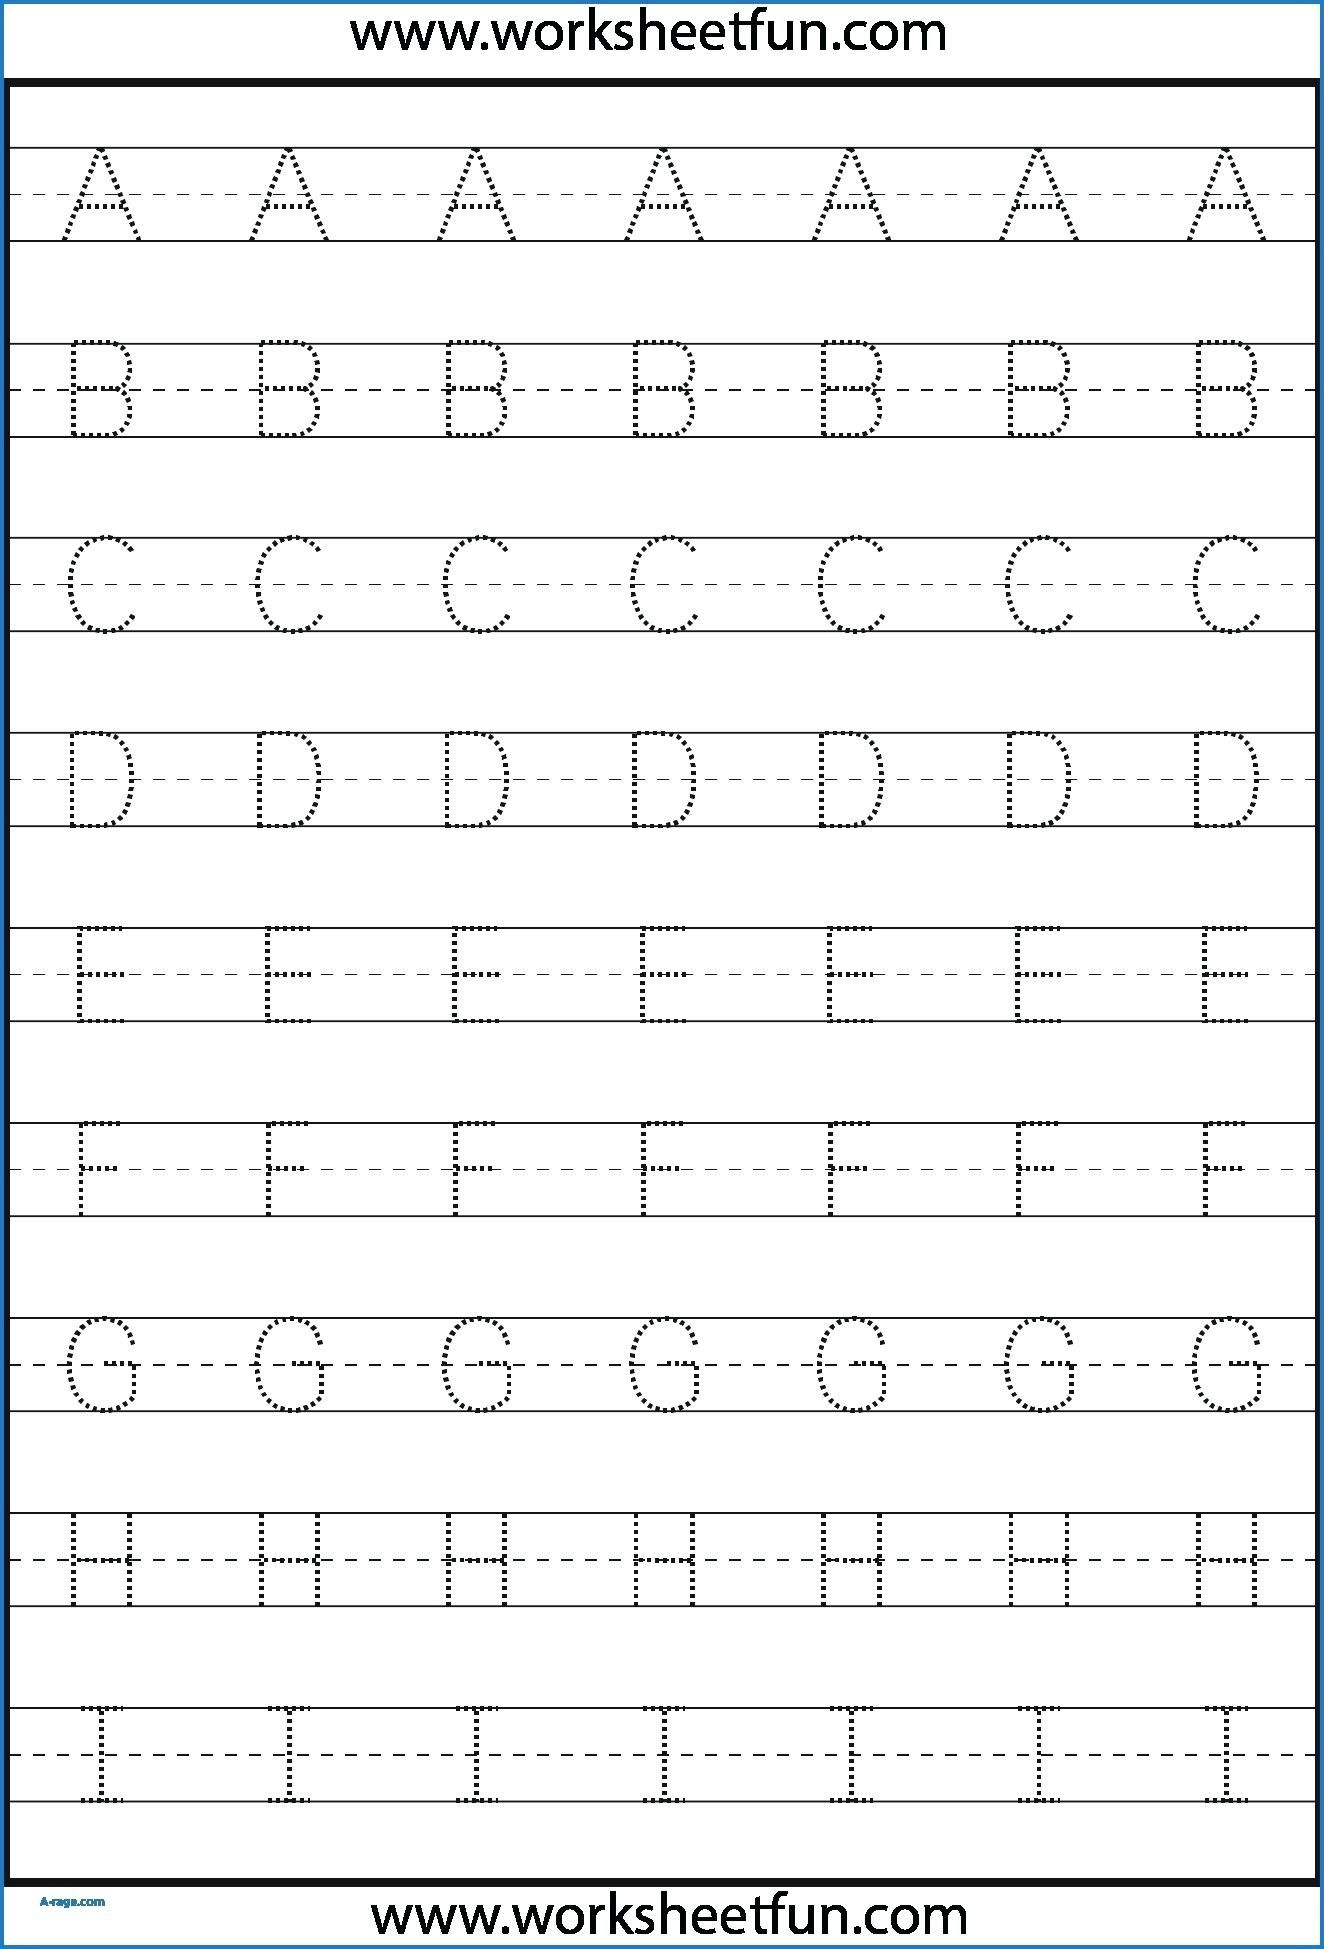 Kindergarten Letter Tracing Worksheets Pdf - Wallpaper Image regarding Letter Tracing Worksheets A-Z Pdf